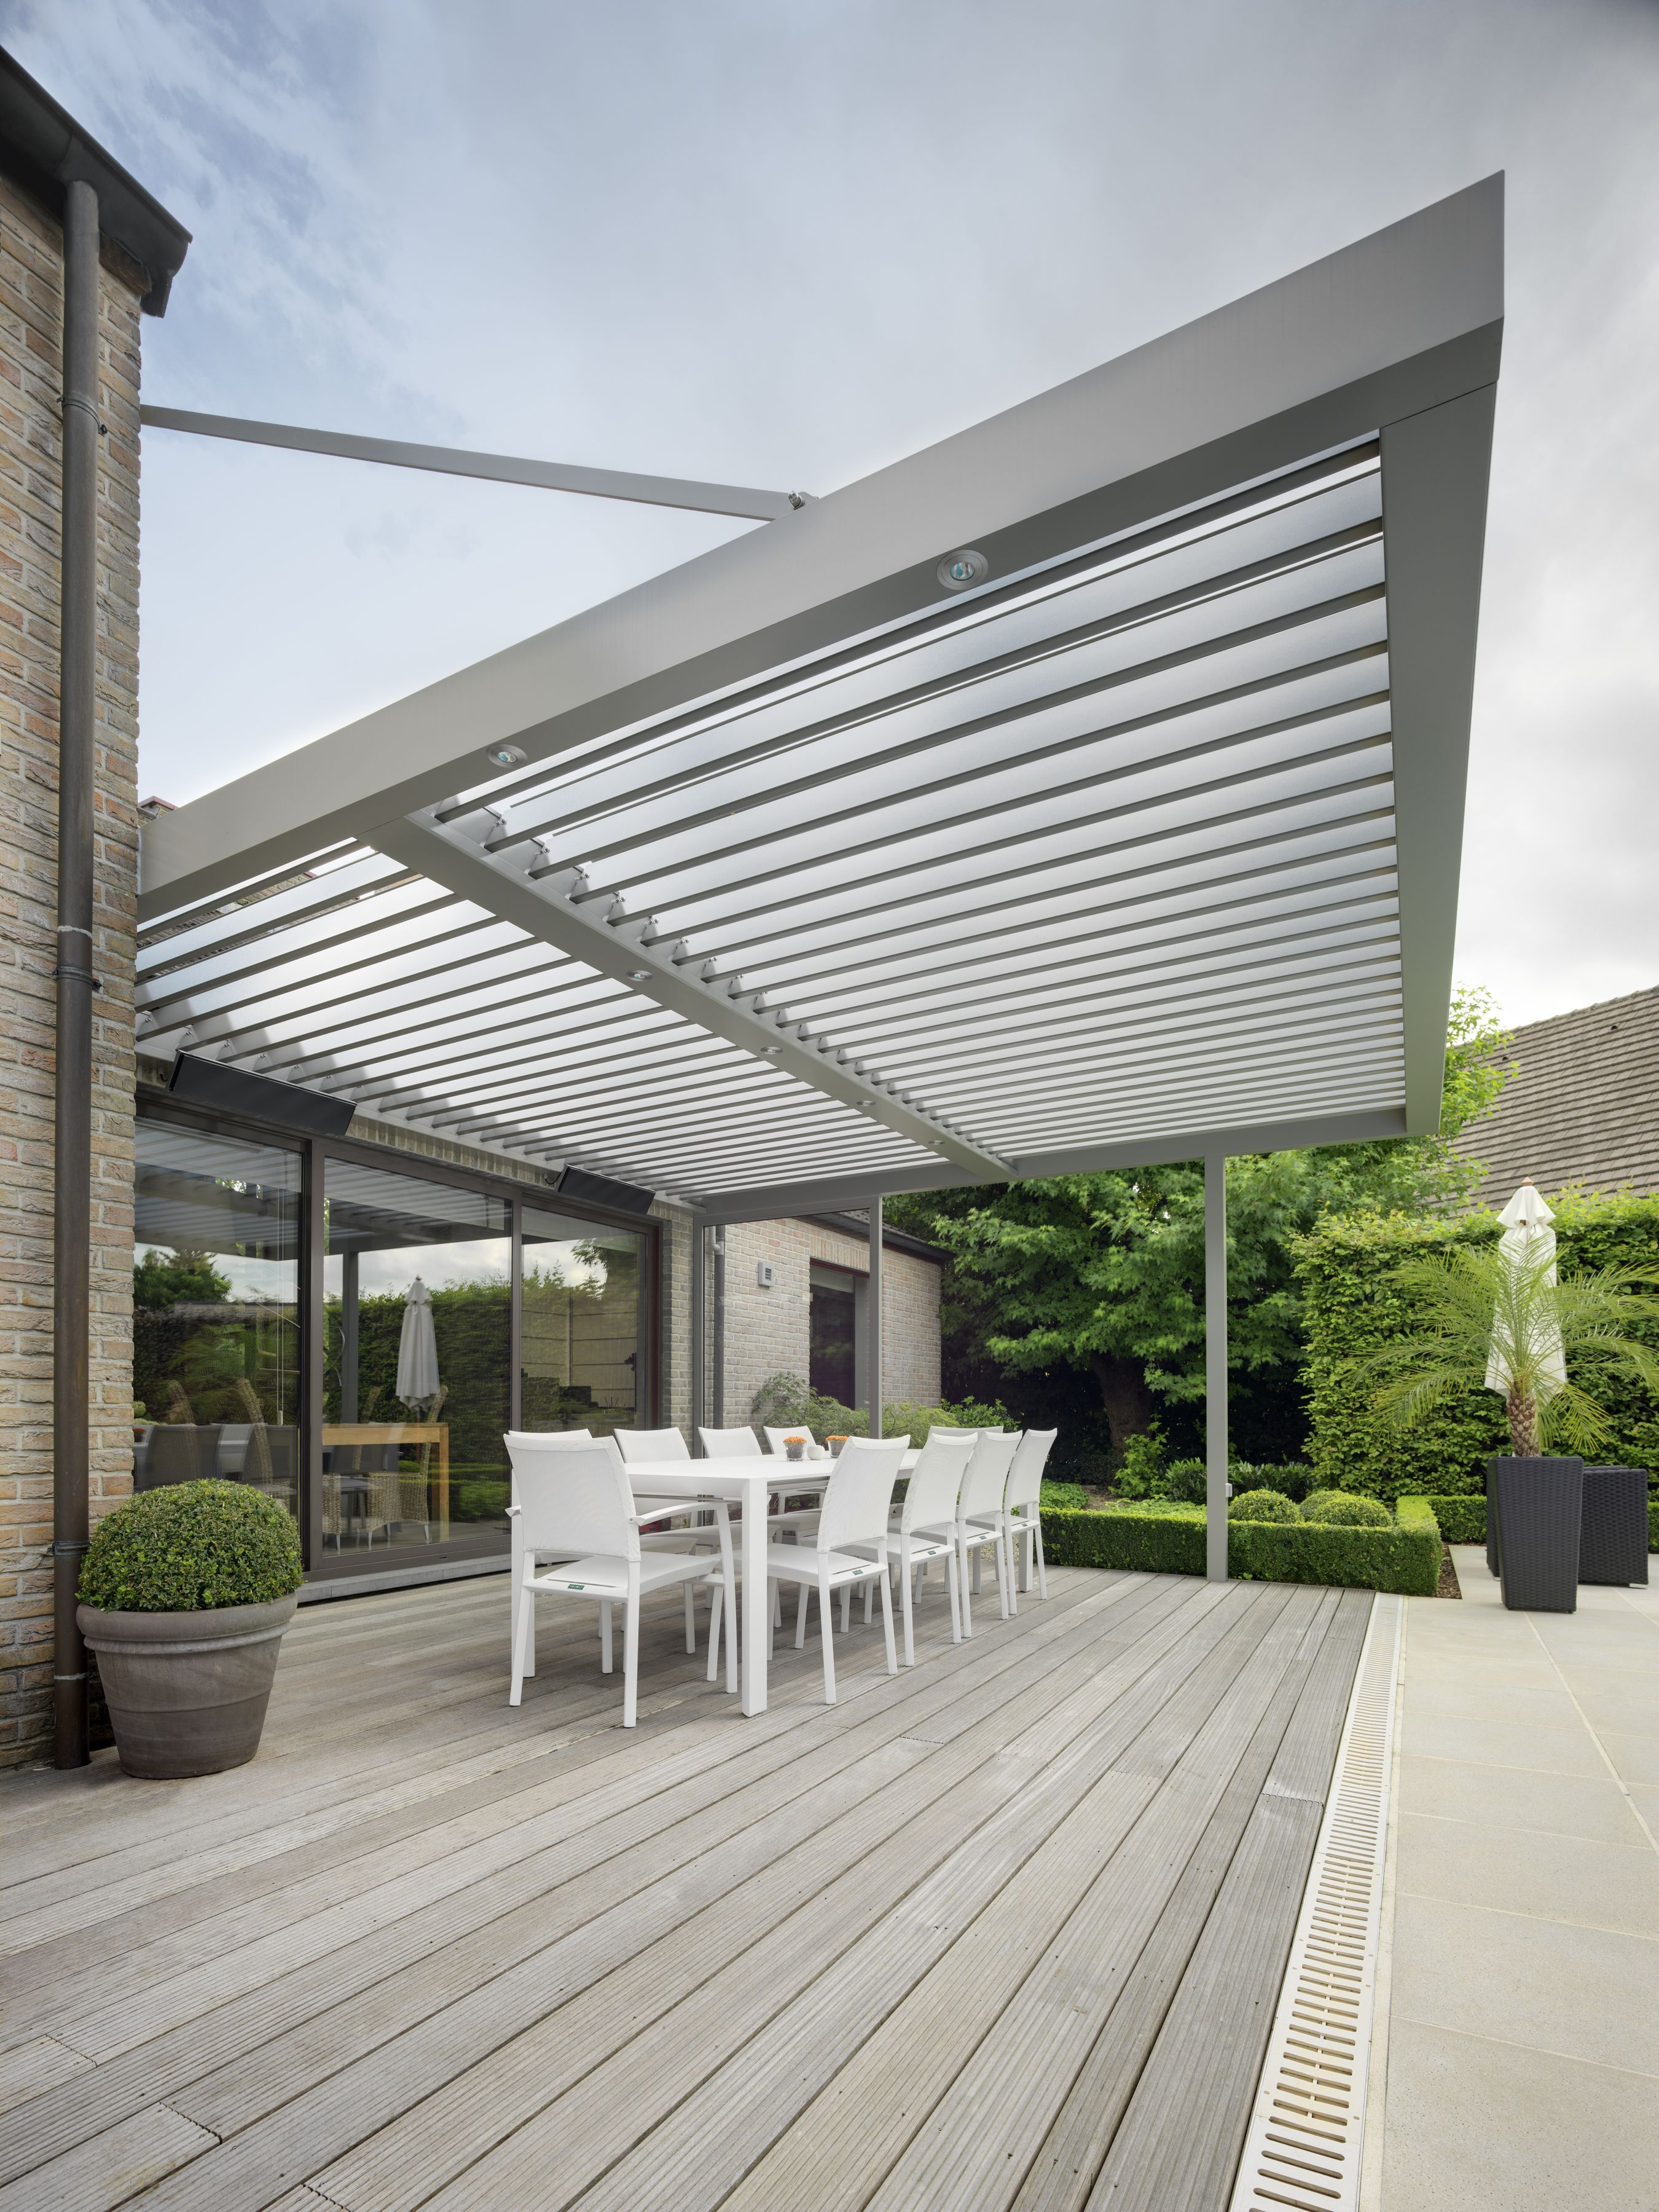 This allweather patio roof system Kingsland Road